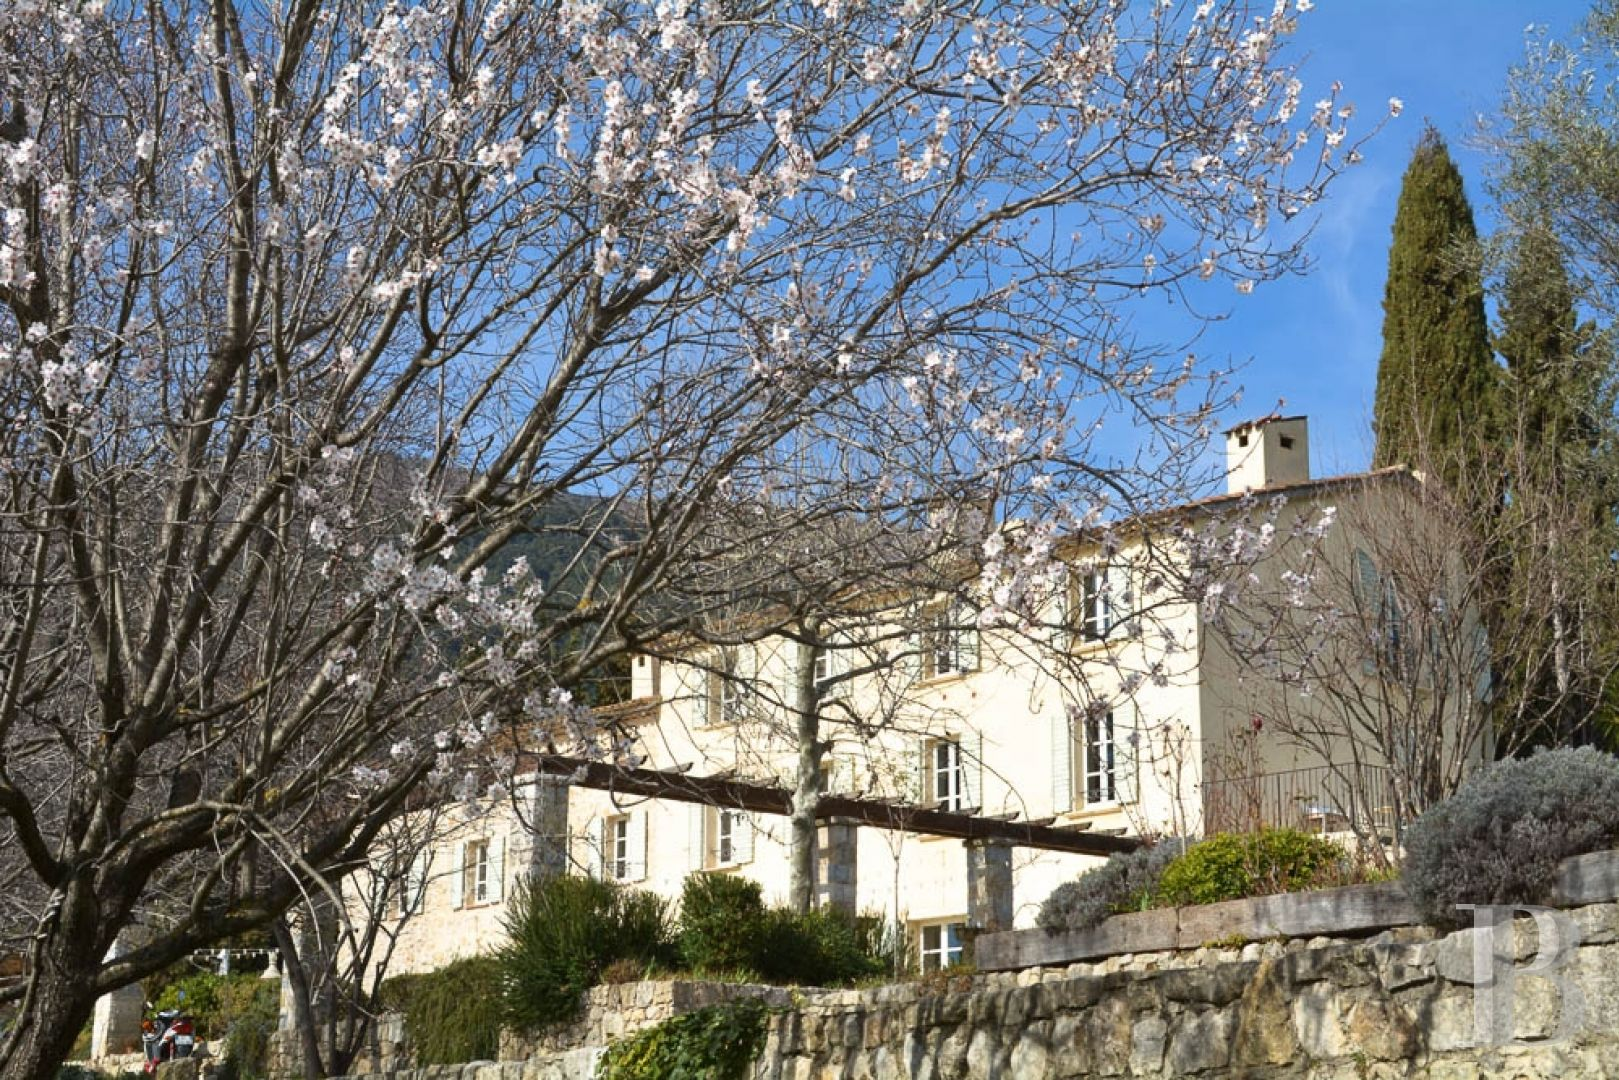 property for sale France provence cote dazur residences traditional - 1 zoom